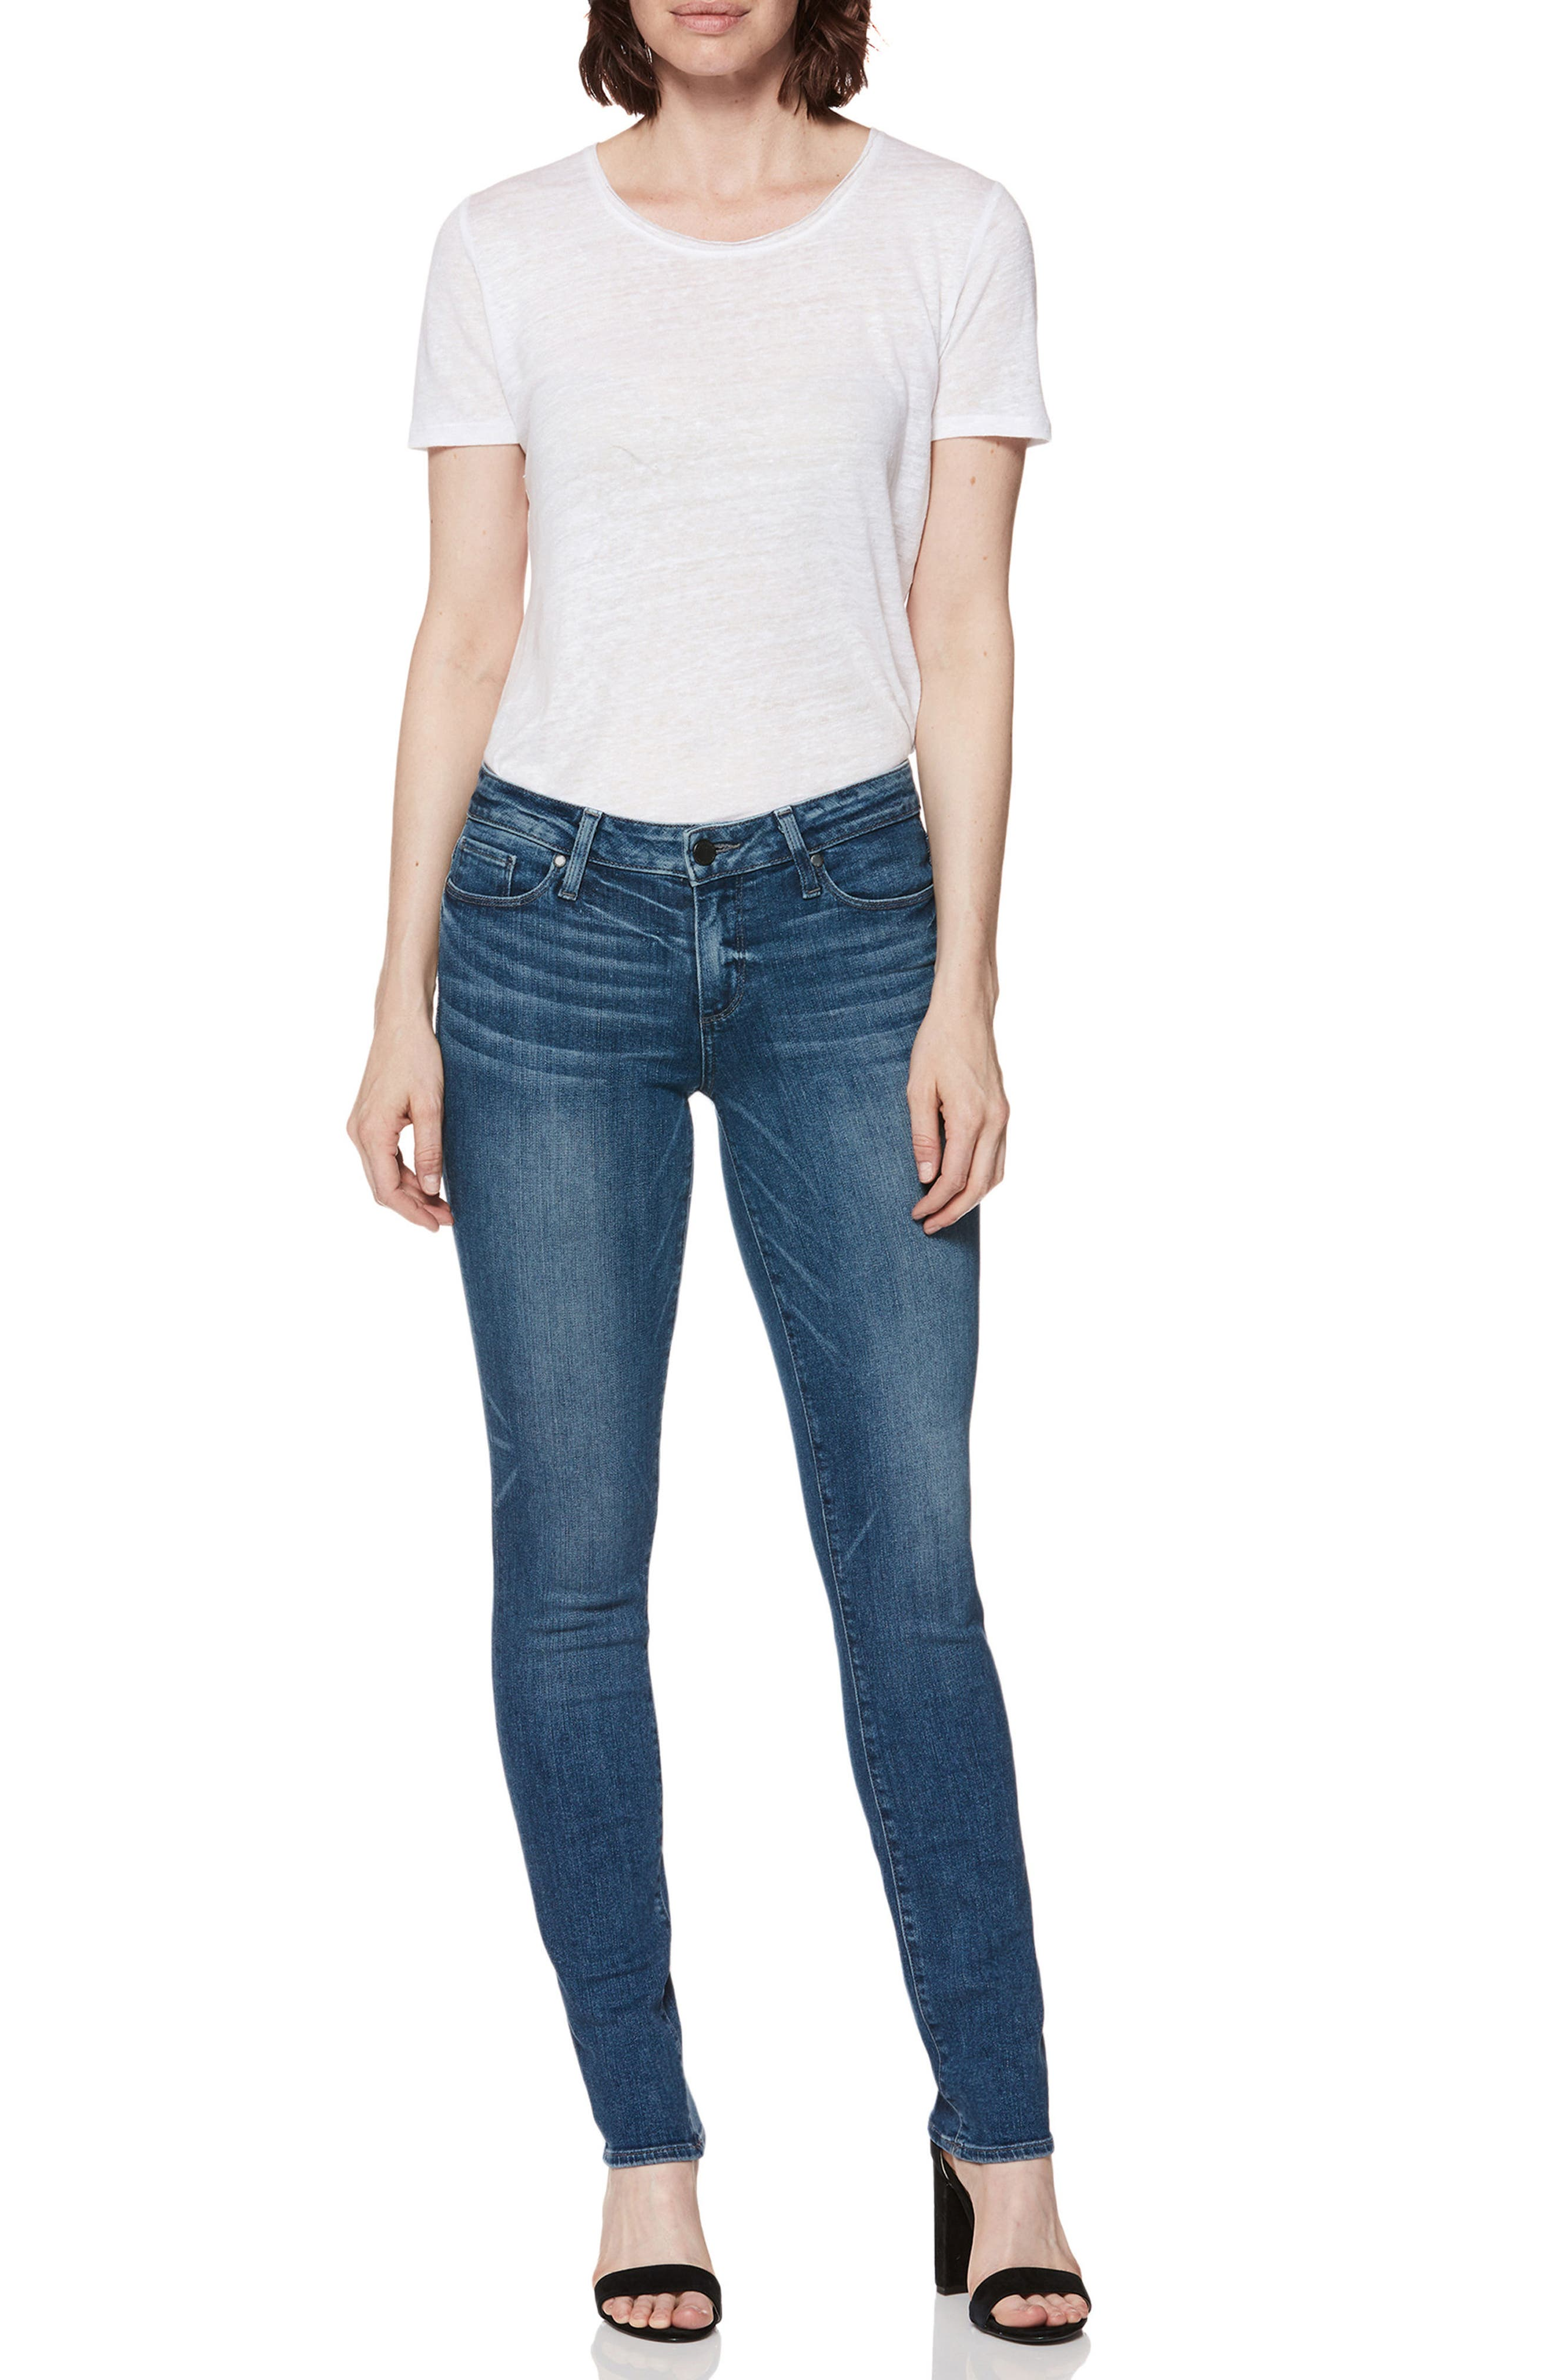 Transcend Vintage - Skyline Skinny Jeans,                             Alternate thumbnail 3, color,                             400